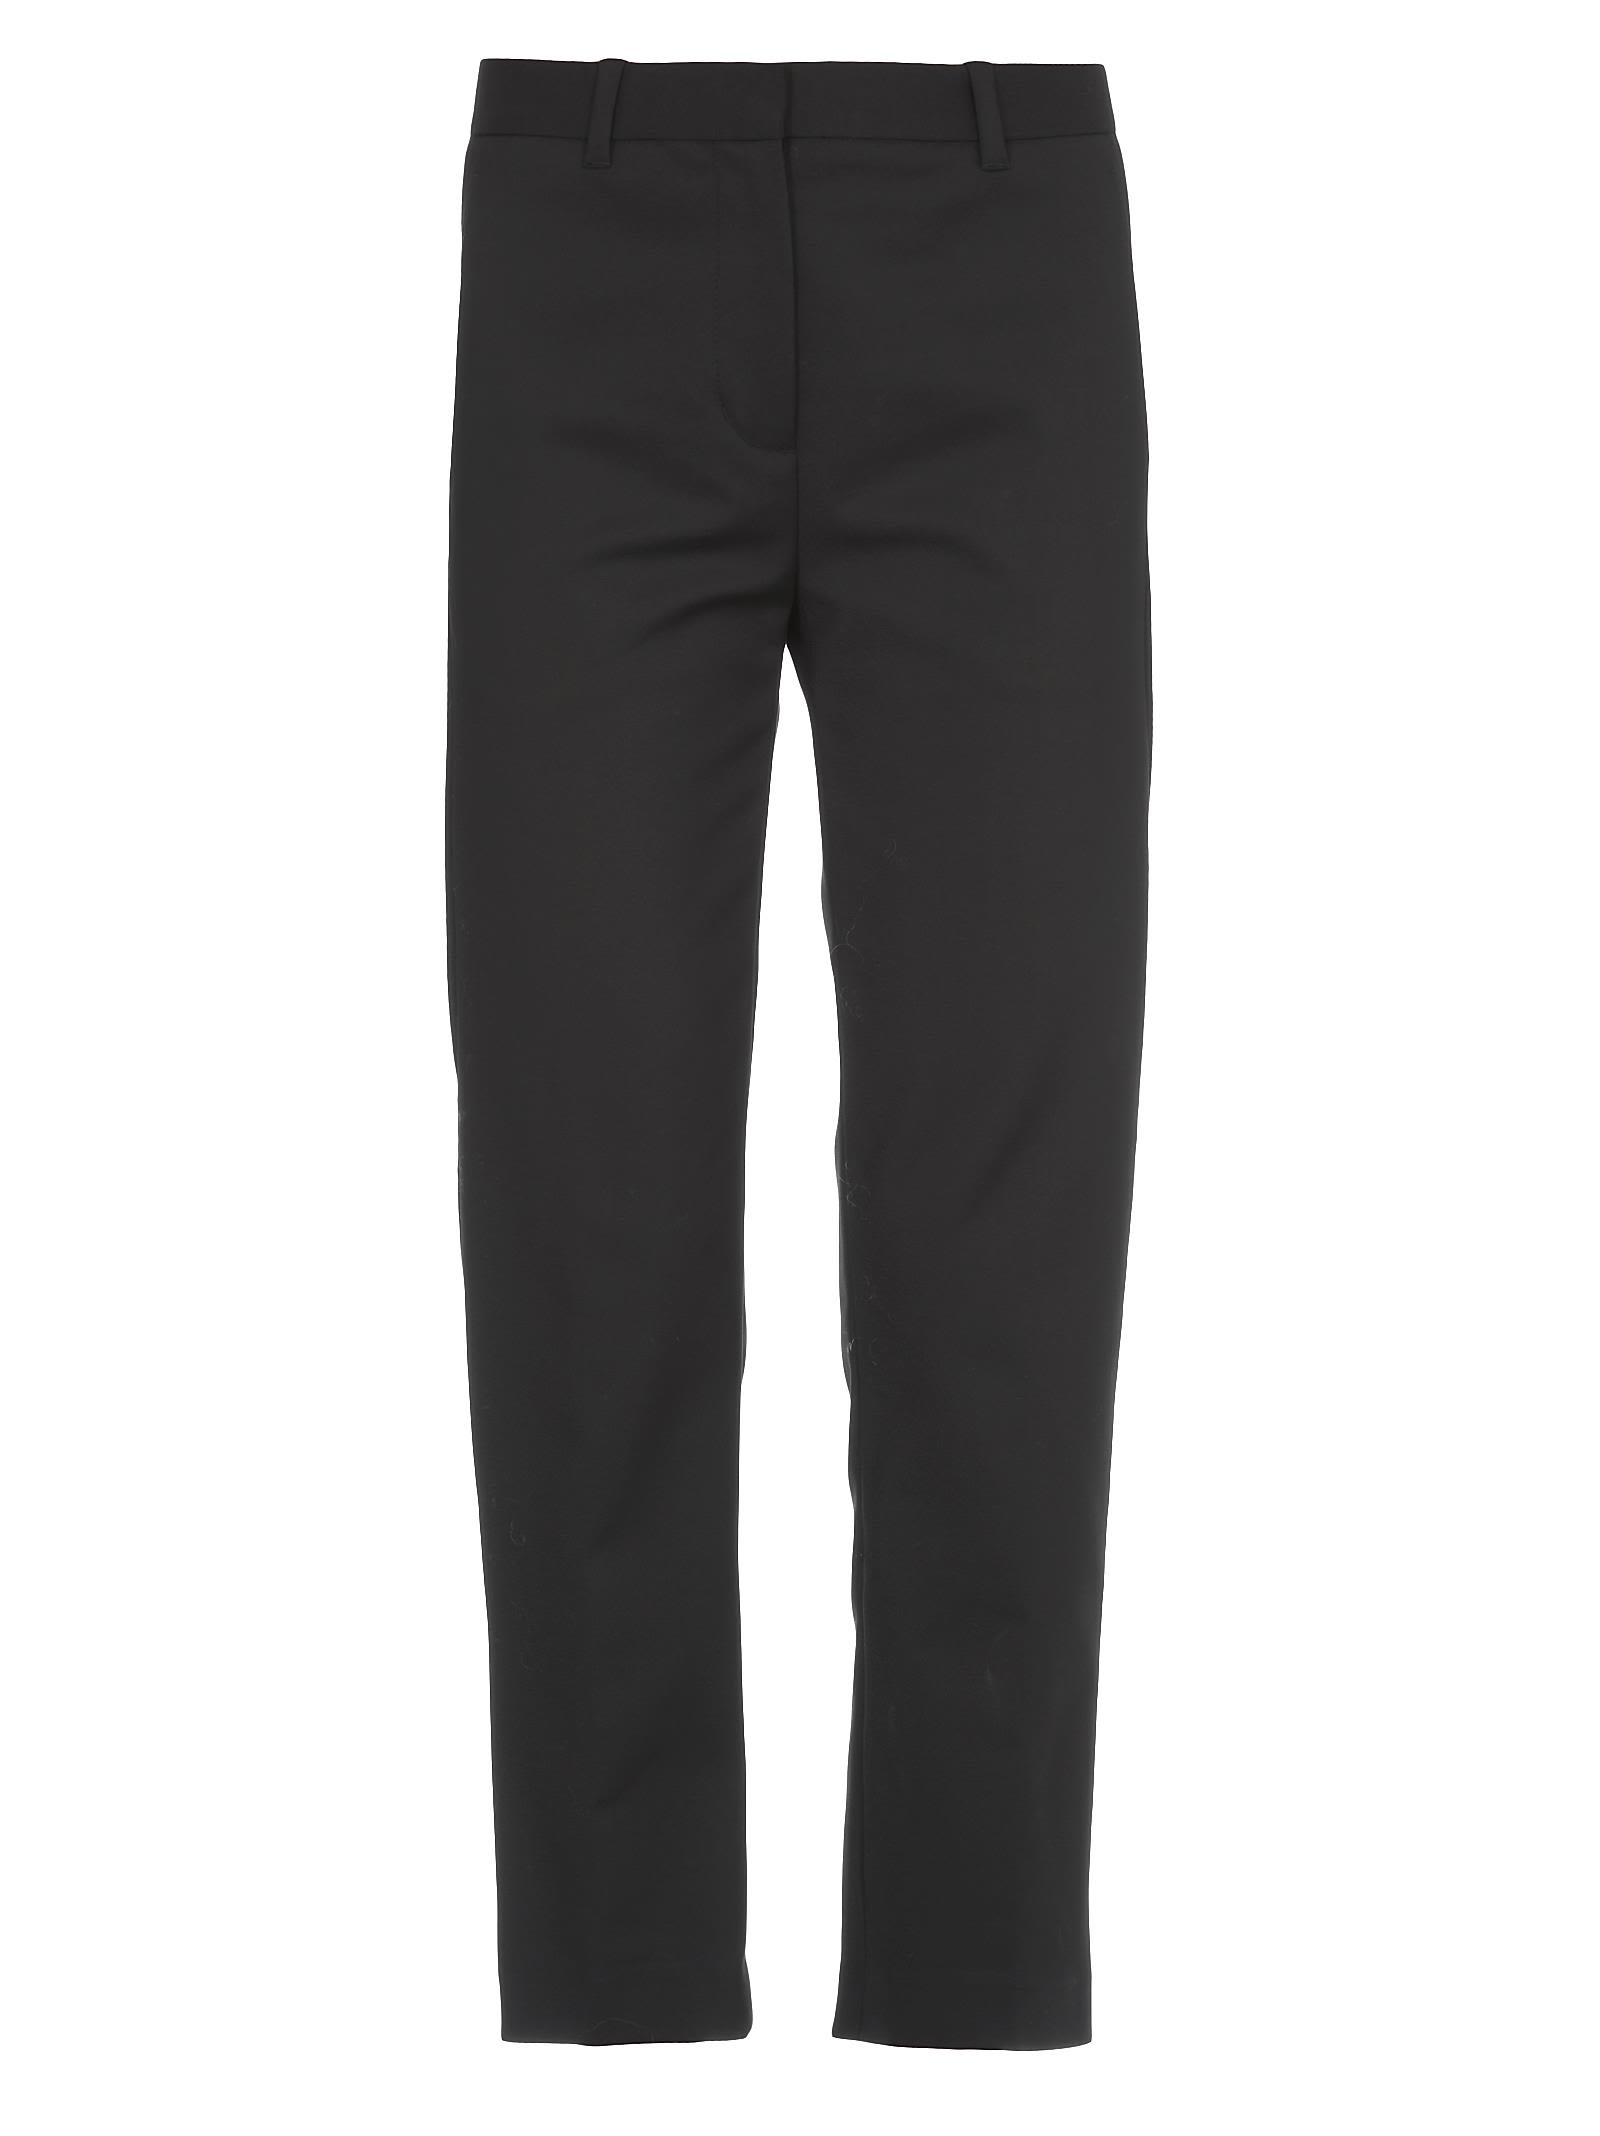 3.1 Phillip Lim Cropped Trouser